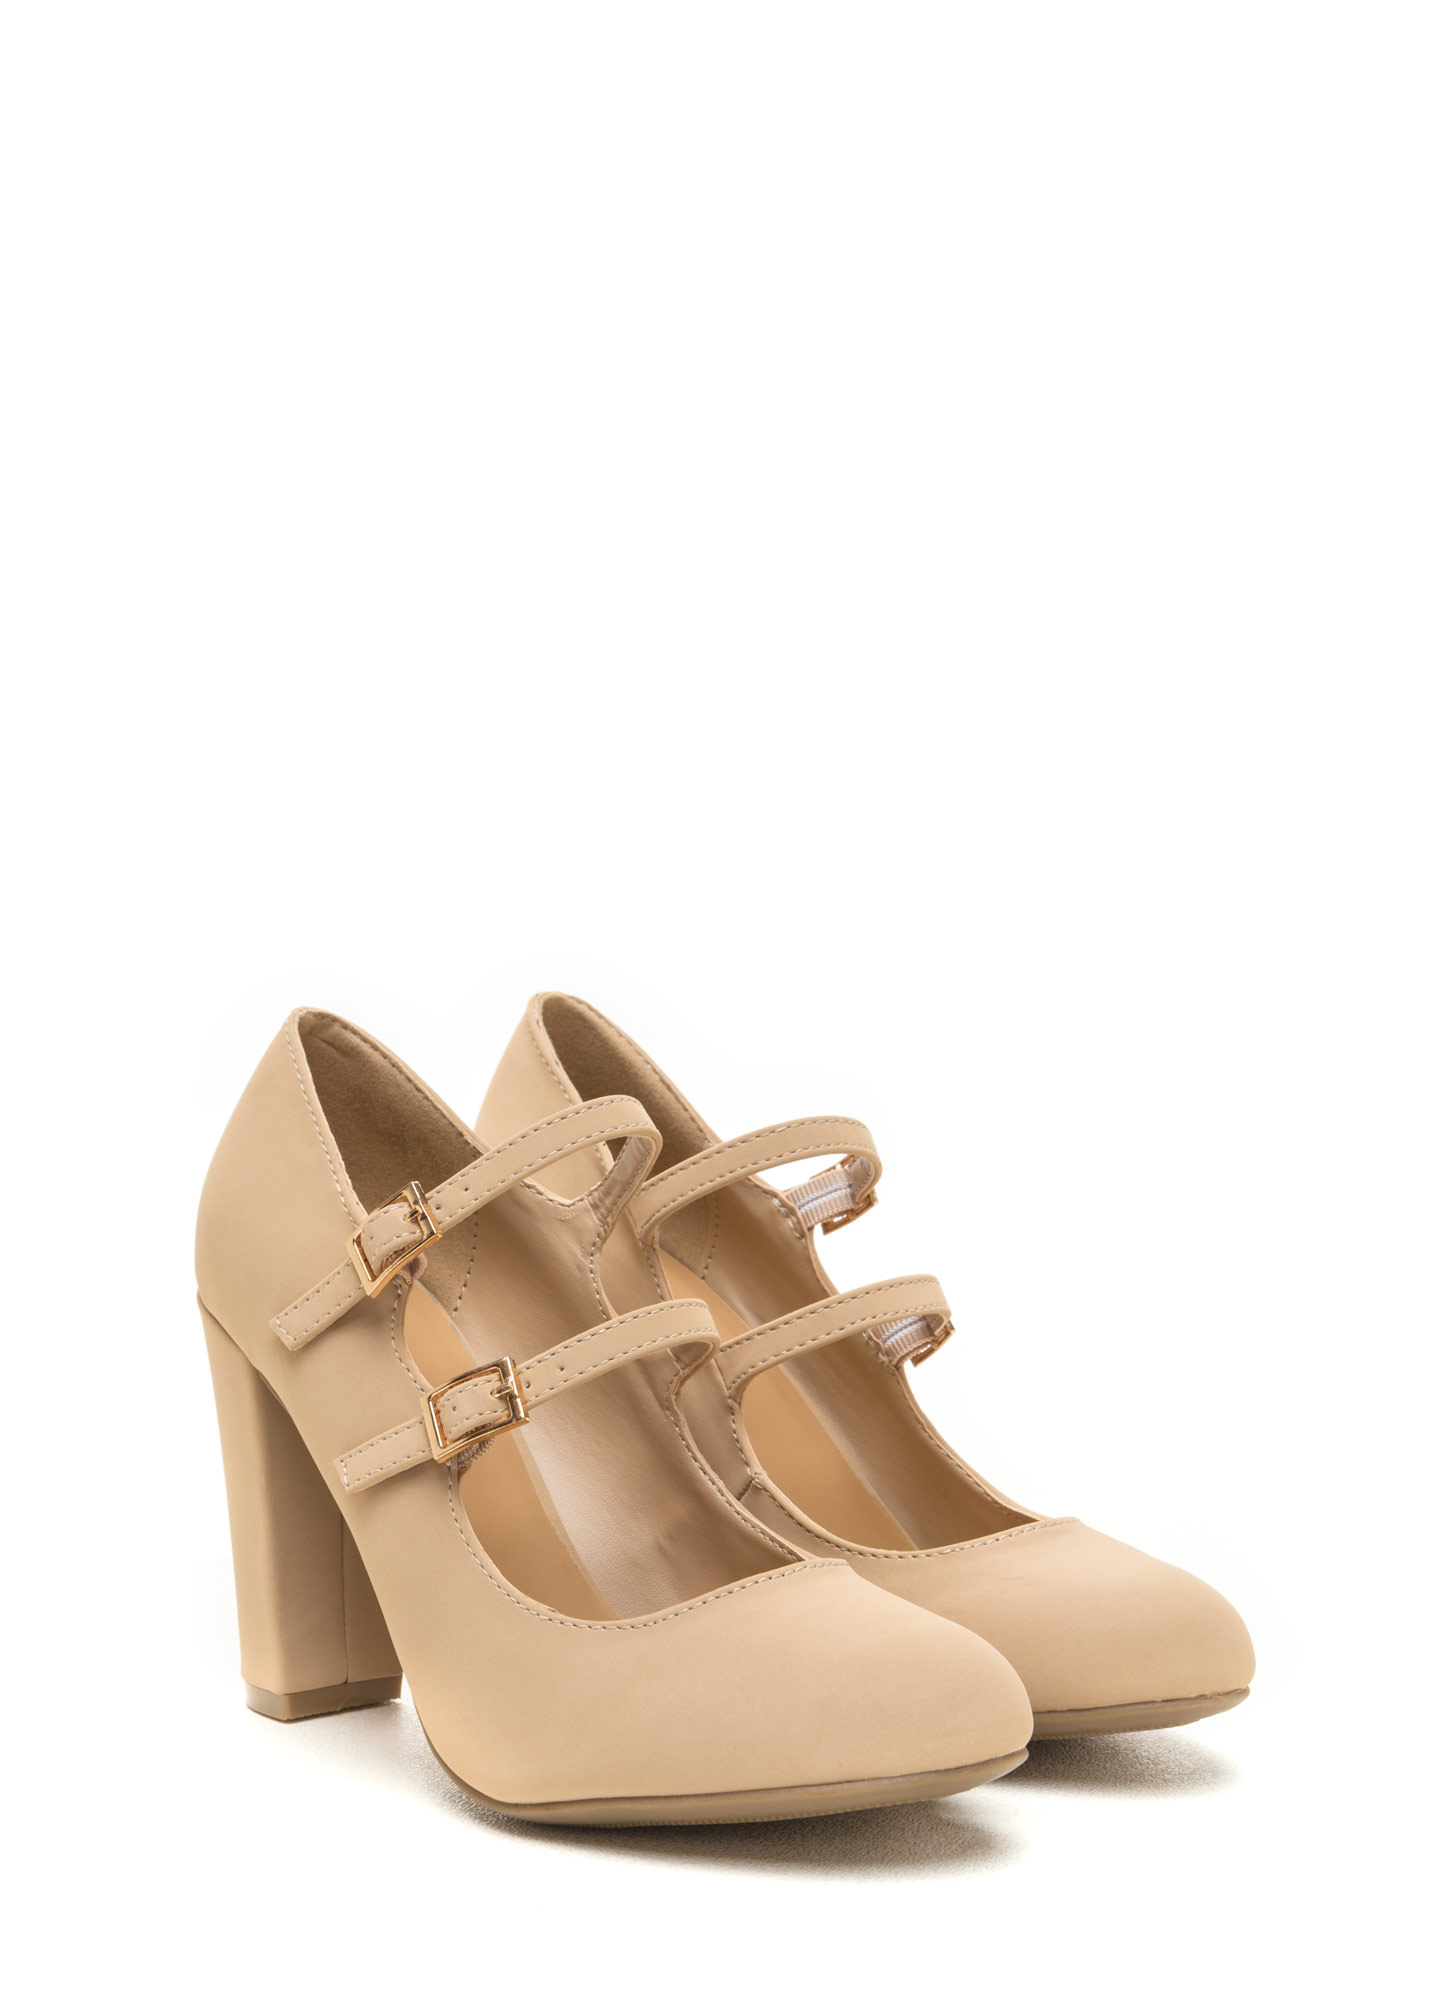 Double Trouble Chunky Mary Jane Heels NUDE